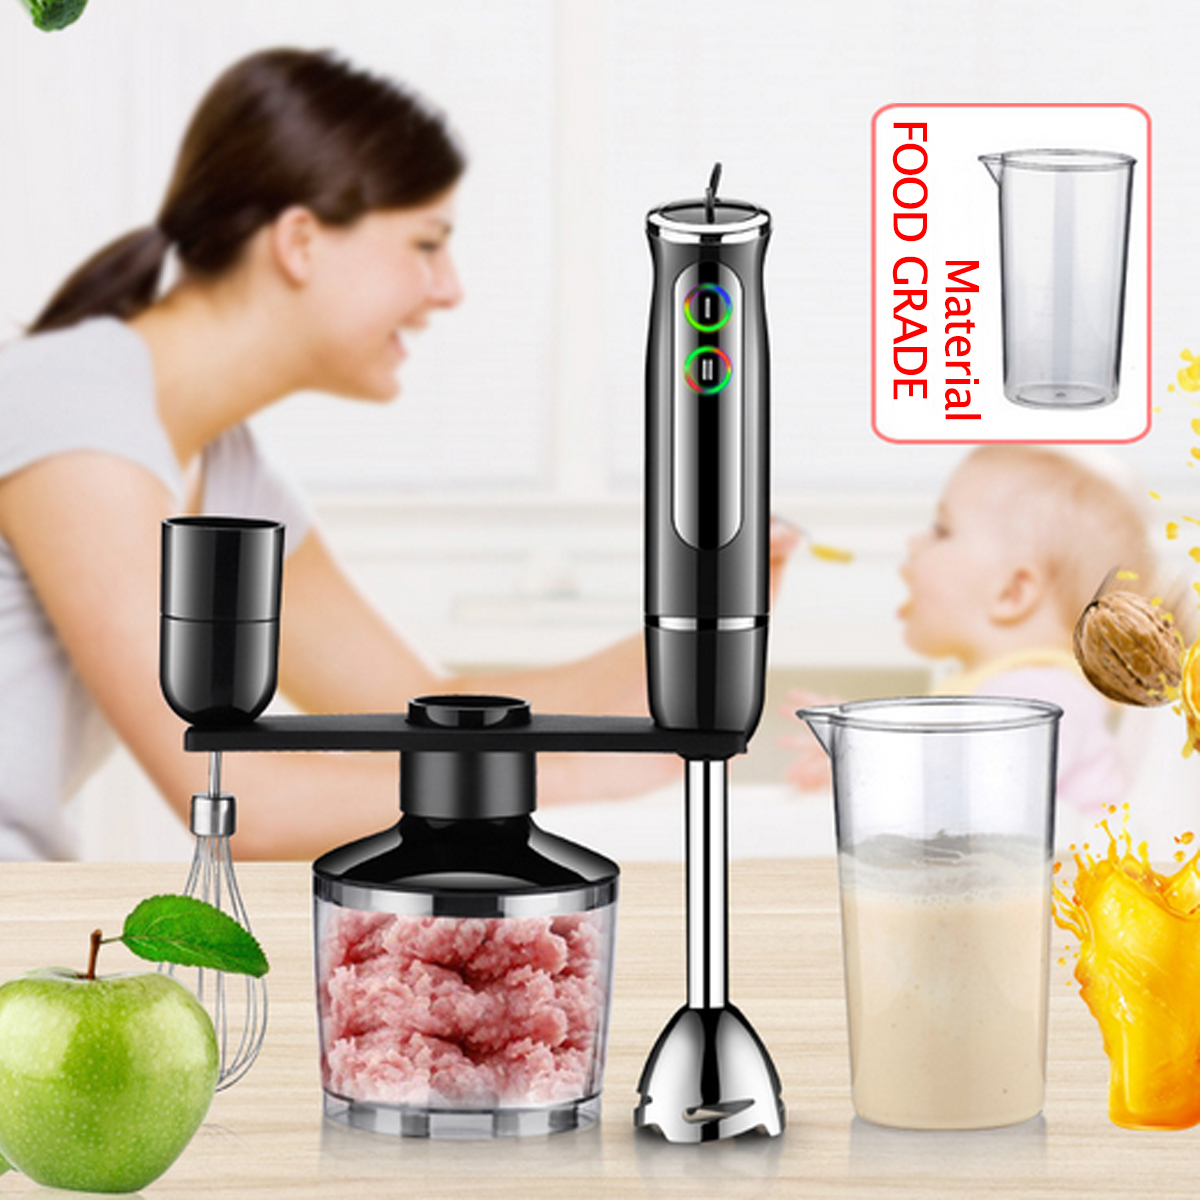 4Pcs 600W Electric Food Hand Blender Mixer Whisk Chopper Jug Cup Processor Black by